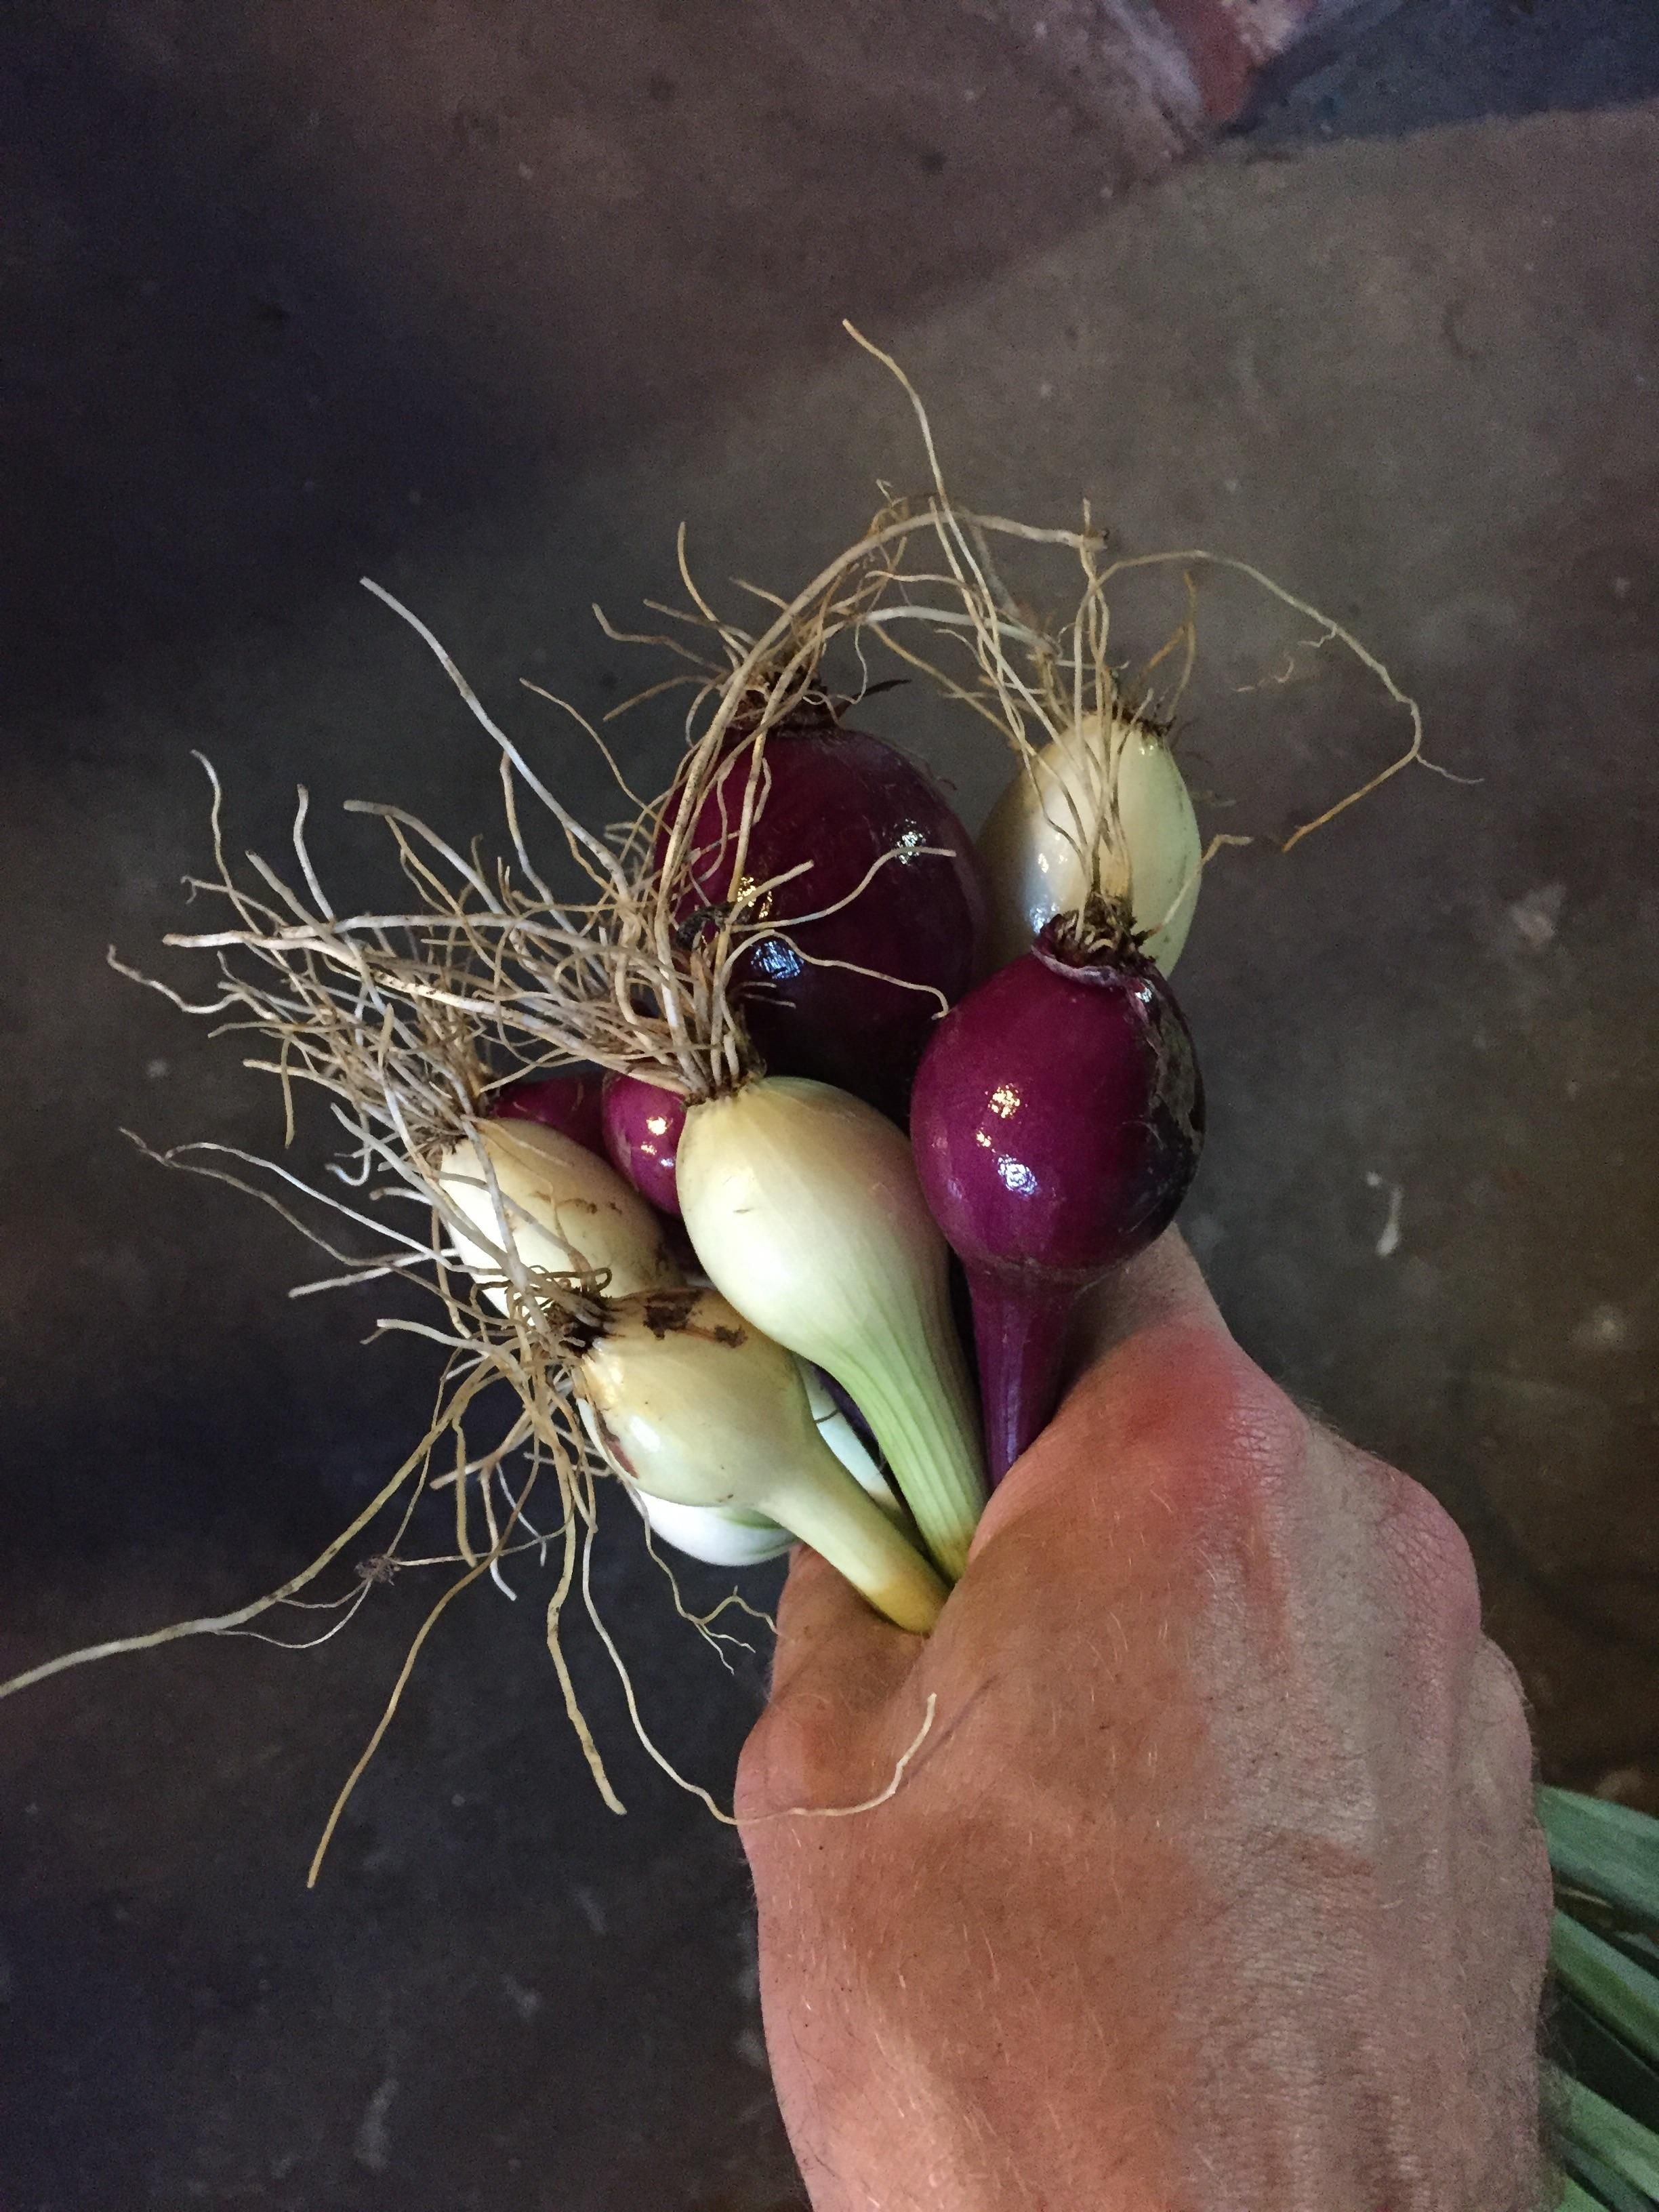 Onion harvest #gardening #garden #gardens #DIY #landscaping #home #horticulture #flowers #gardenchat #roses #nature